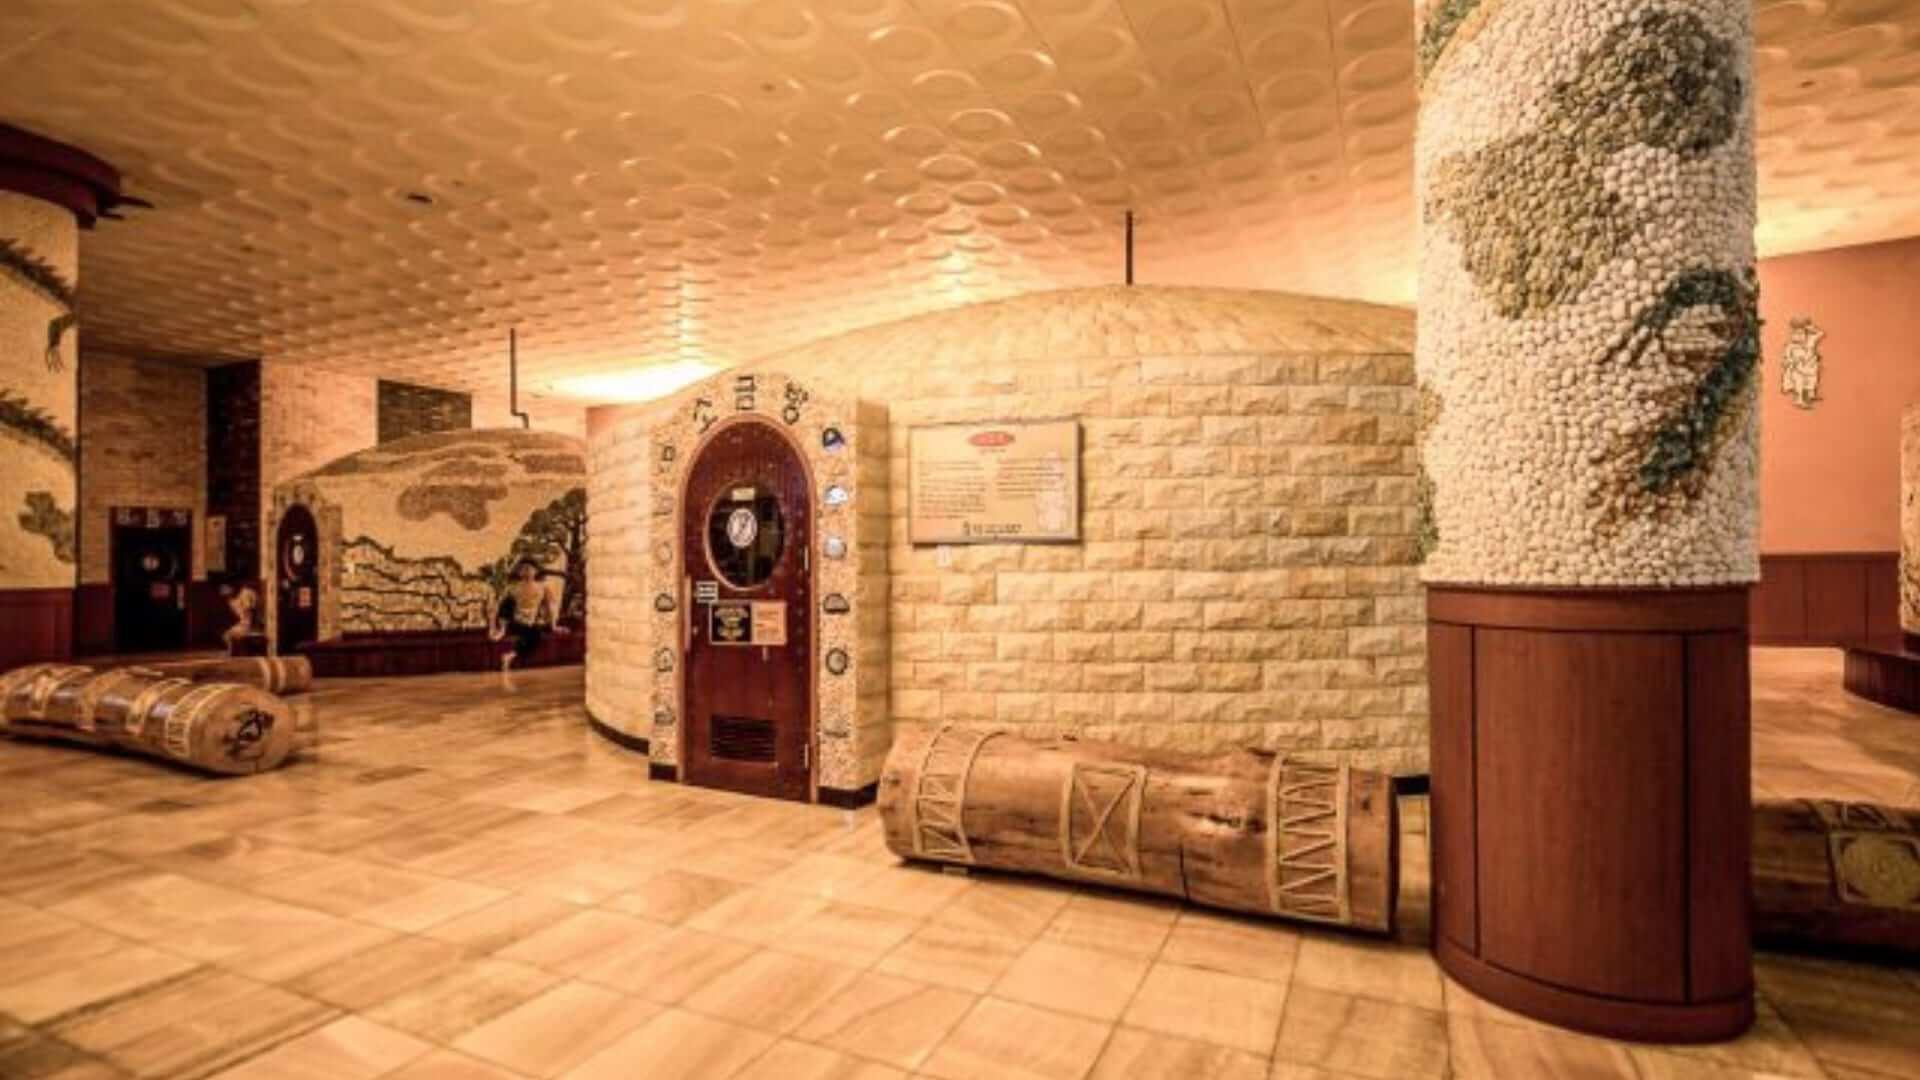 The inside of a Korean sauna made of all kinds of white stones in Seoul.